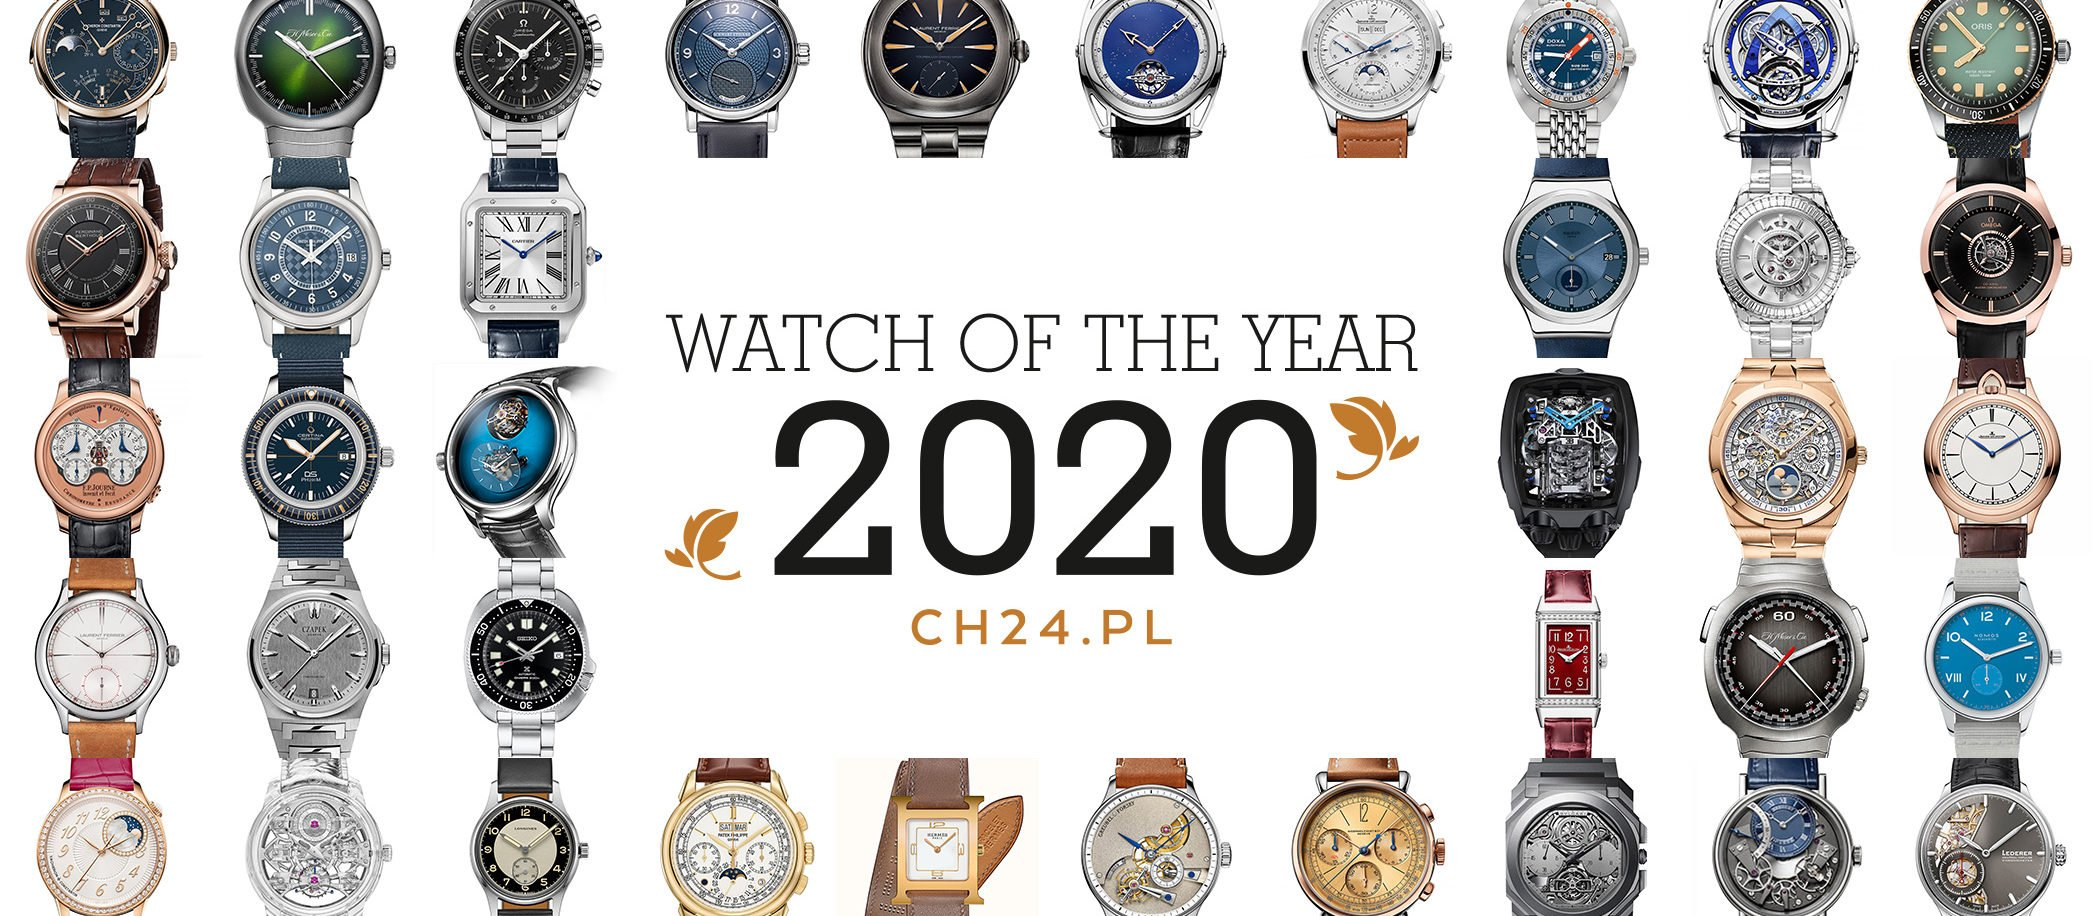 CH24 Watch Of The Year 2020